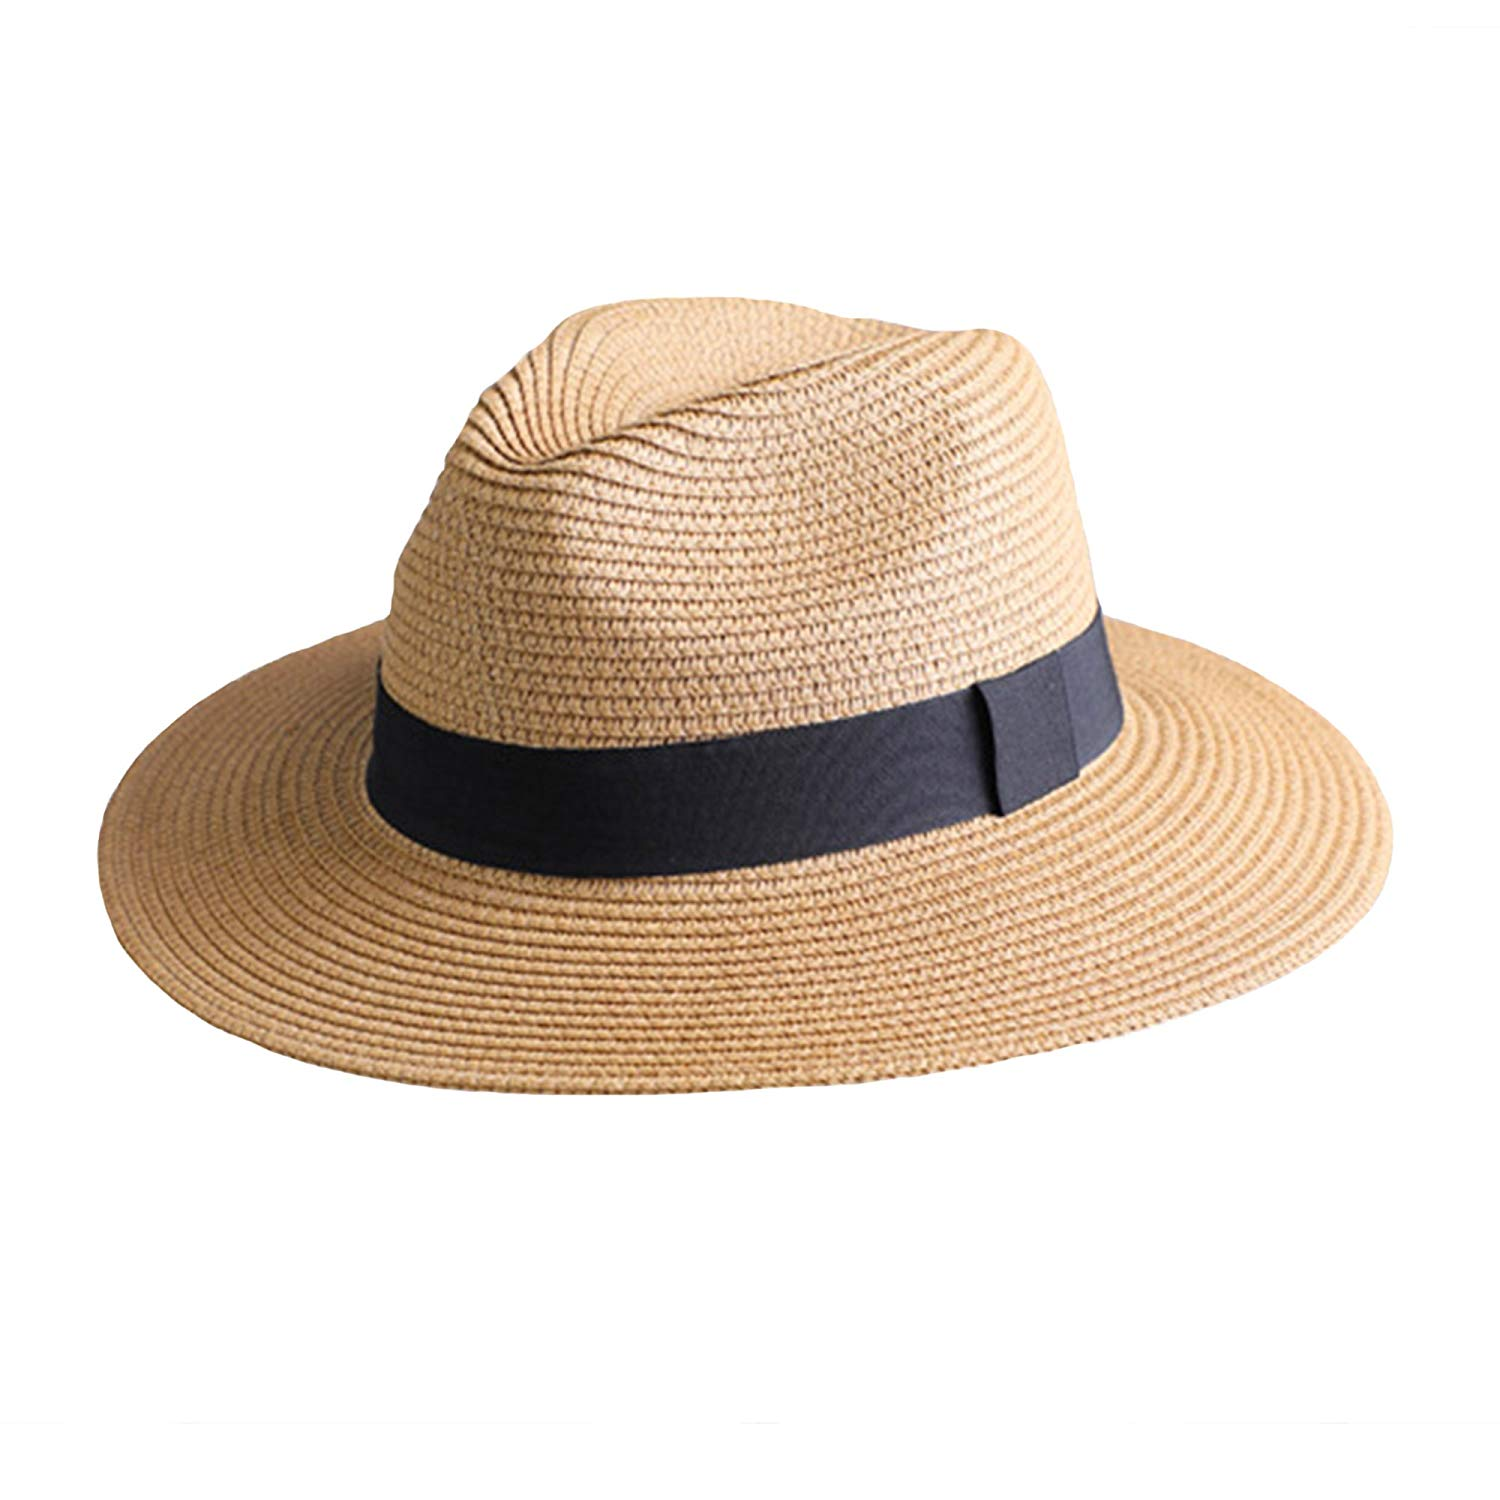 655a406e Get Quotations · Ksenia Fedora Hat for Women Packable Wide Brim Straw Hat